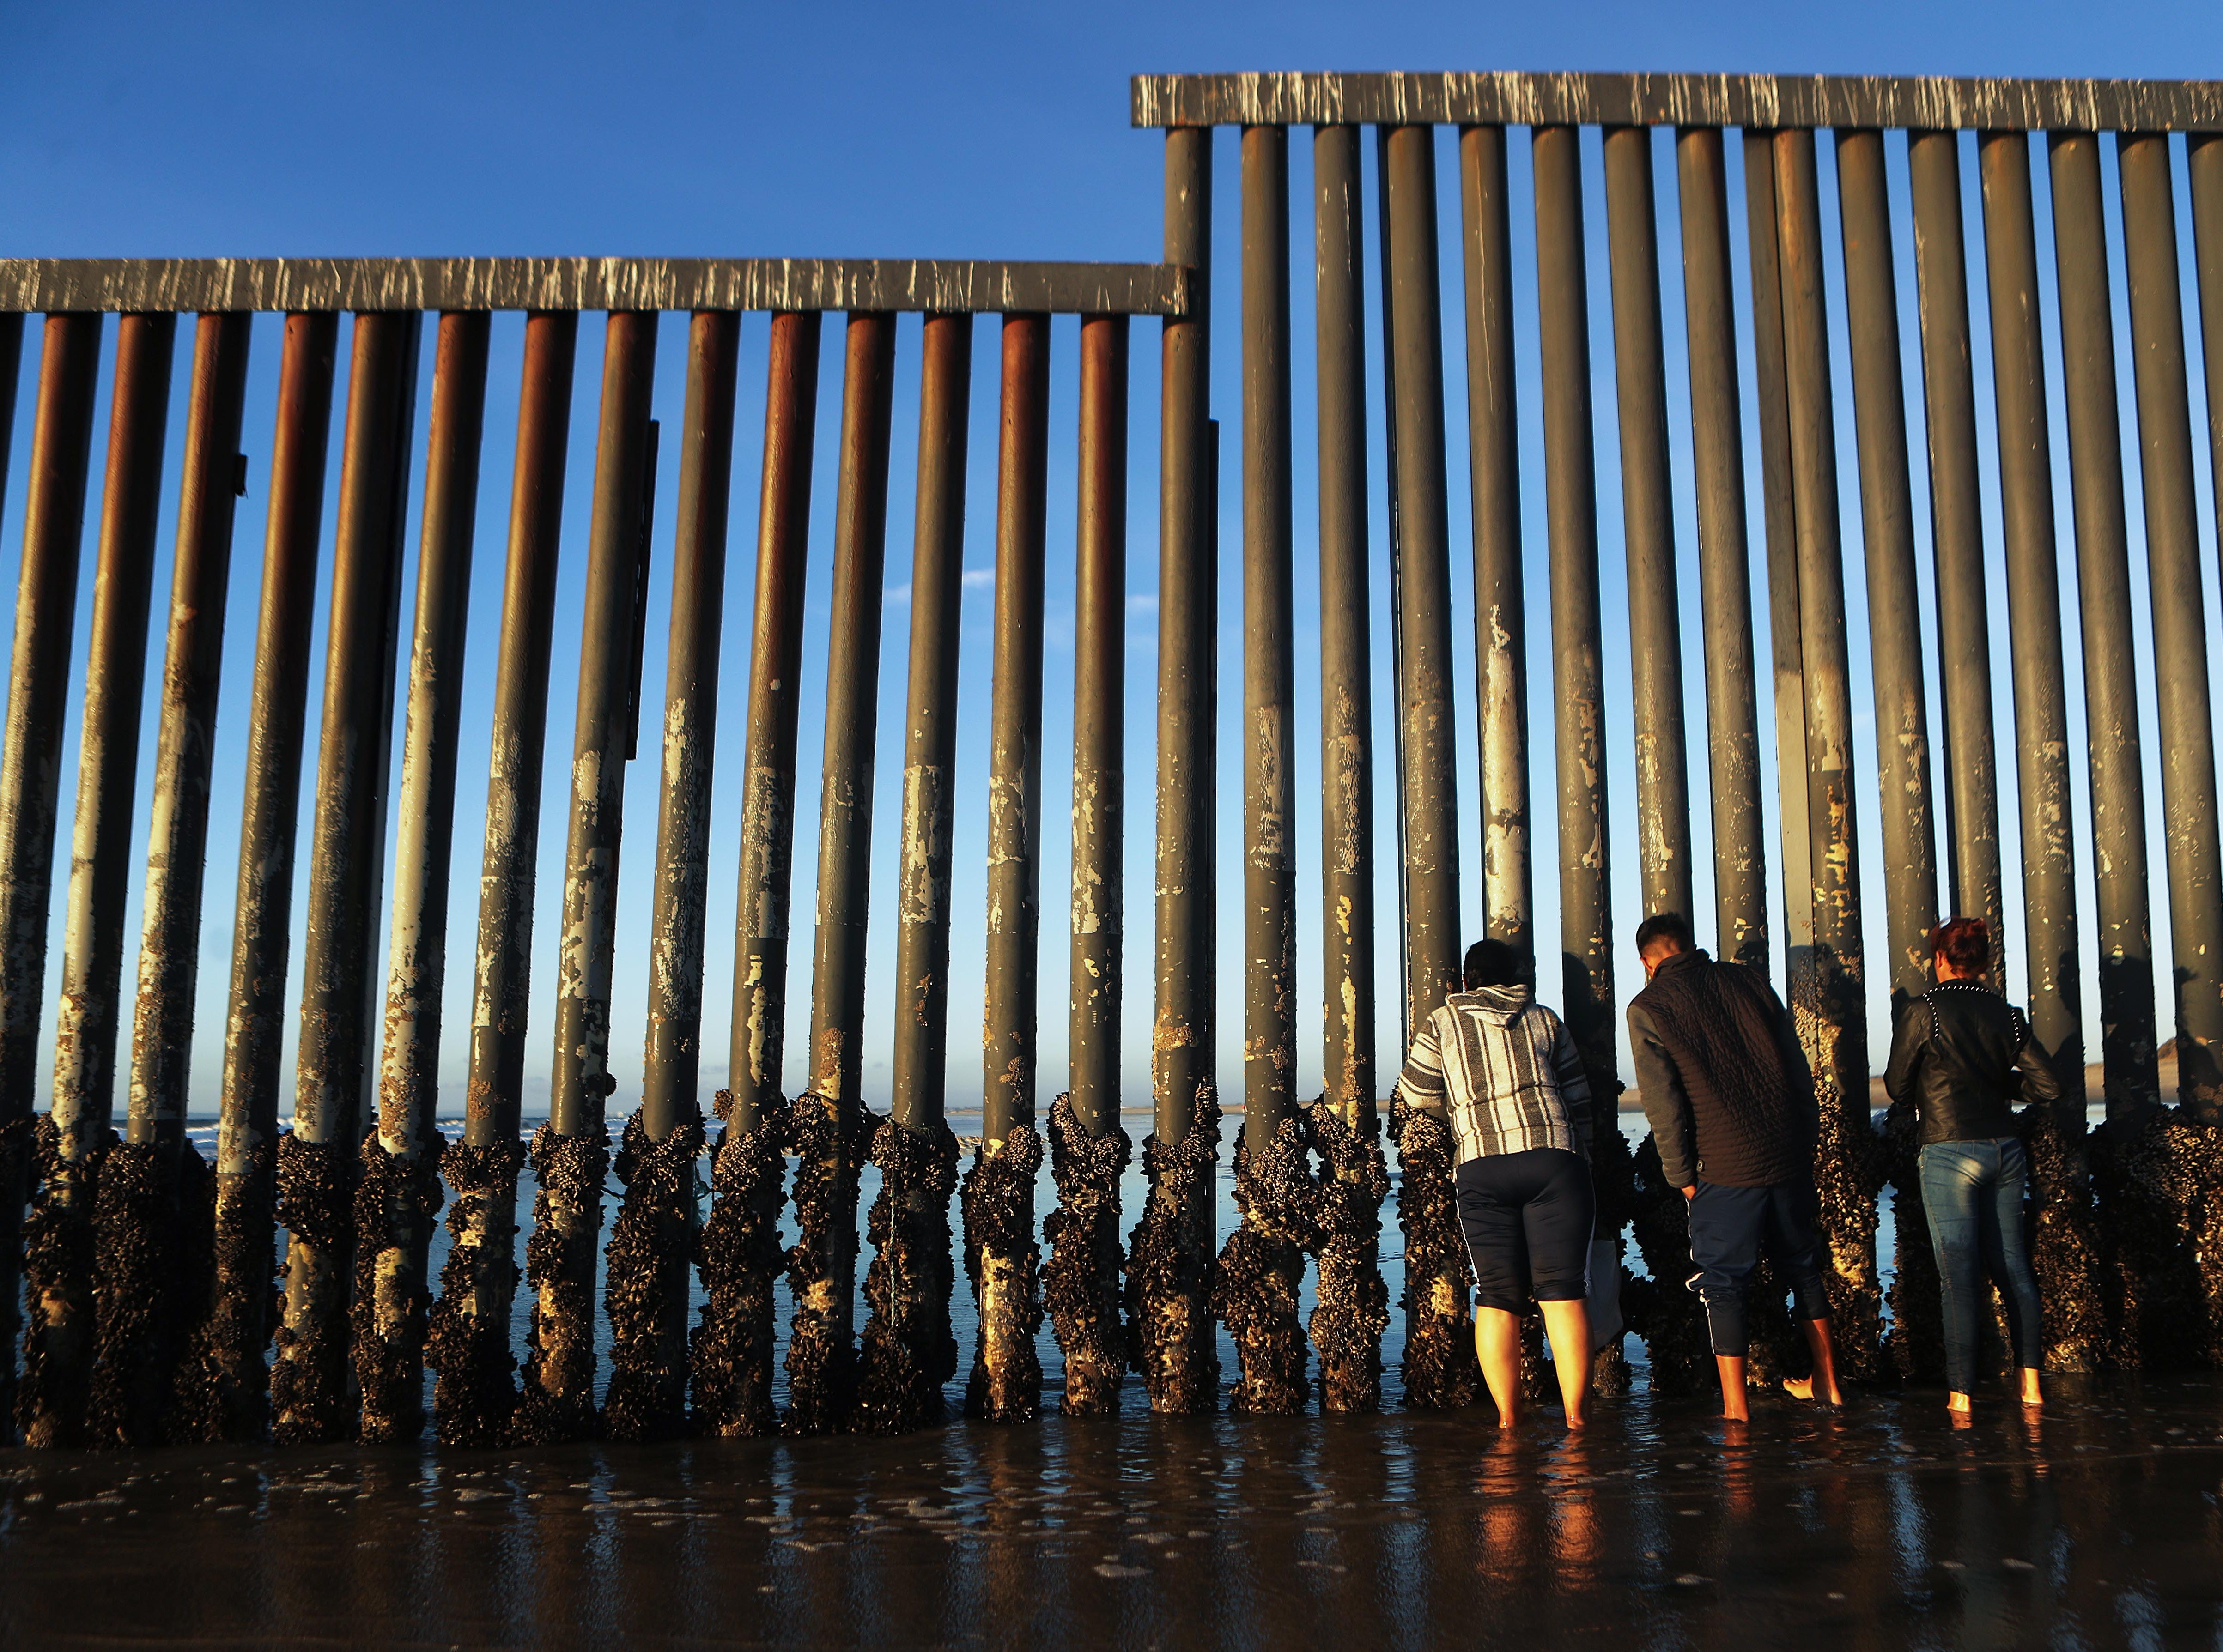 People peer through the U.S.-Mexico border fence, towards San Diego, at the Pacific Ocean, on Nov. 23, 2018 in Tijuana, Mexico.